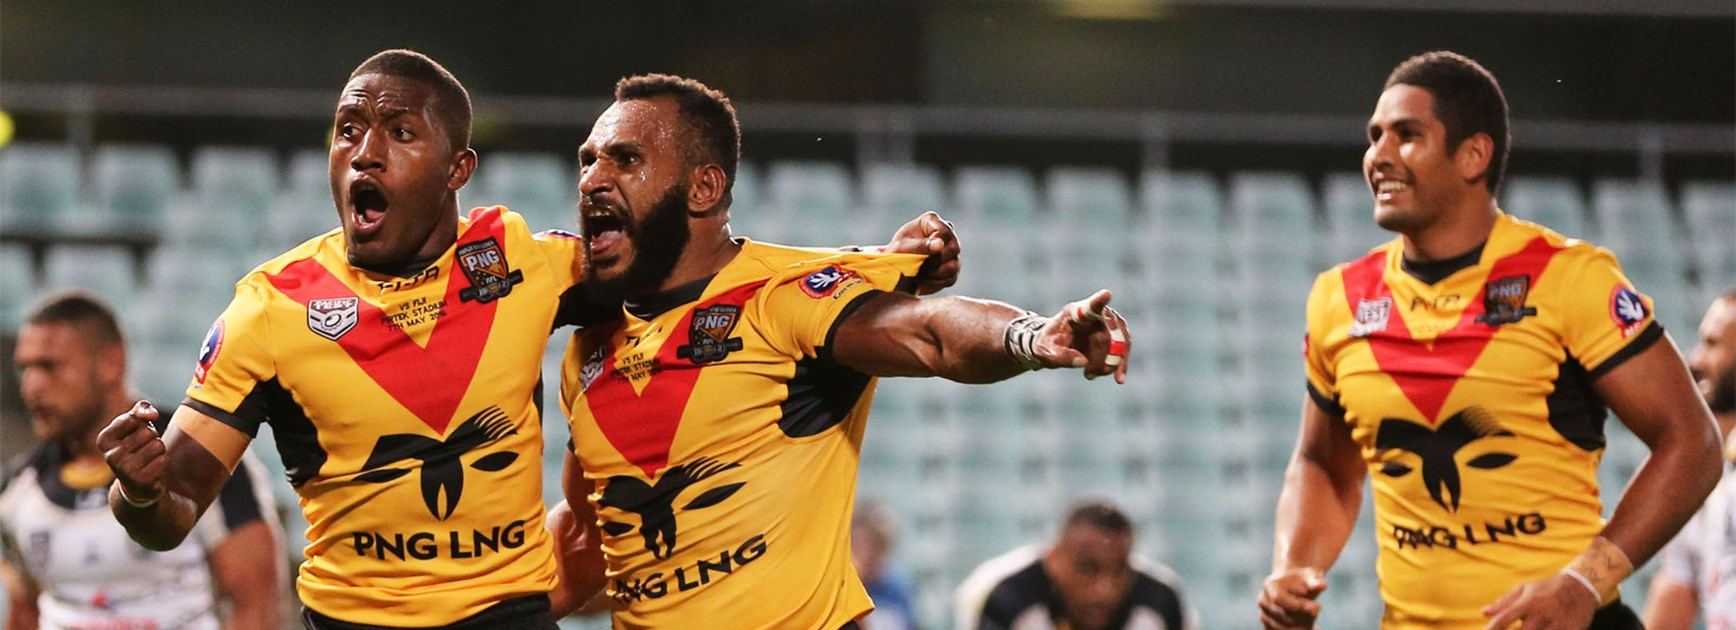 Papua New Guinea celebrate a try during their win over Fiji on Saturday night.